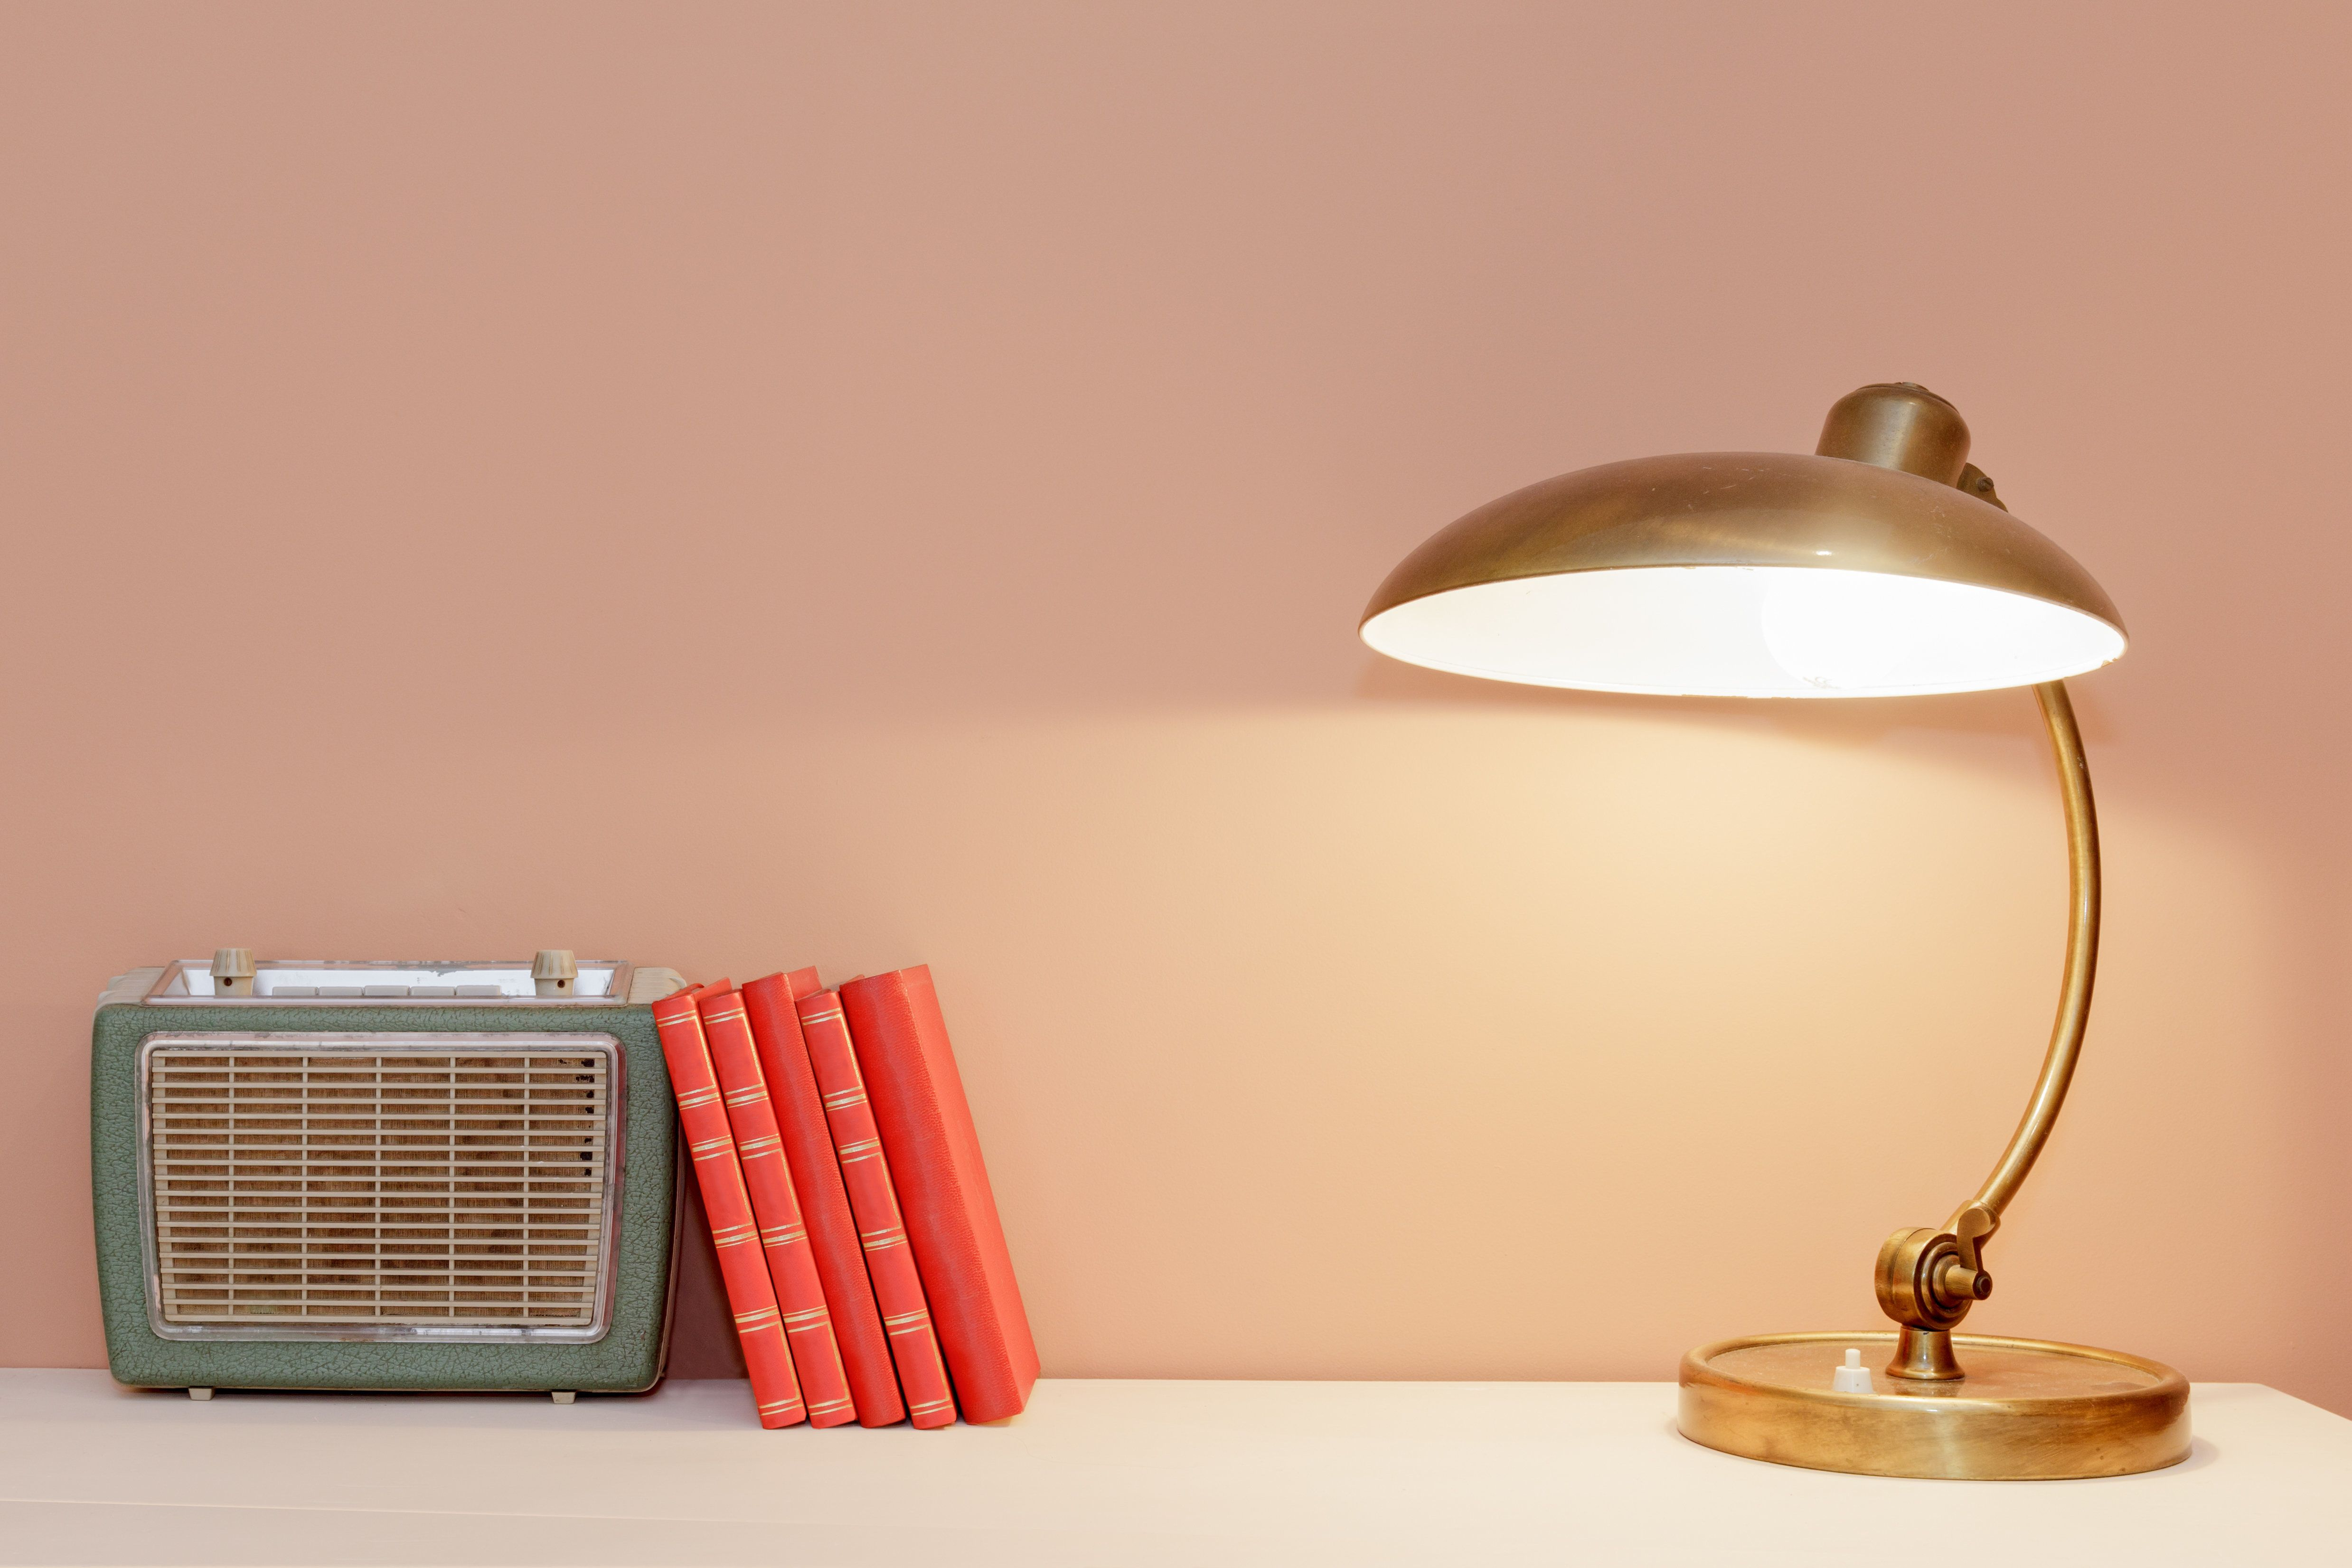 Retro Style Table With Lamp, Books and Radio